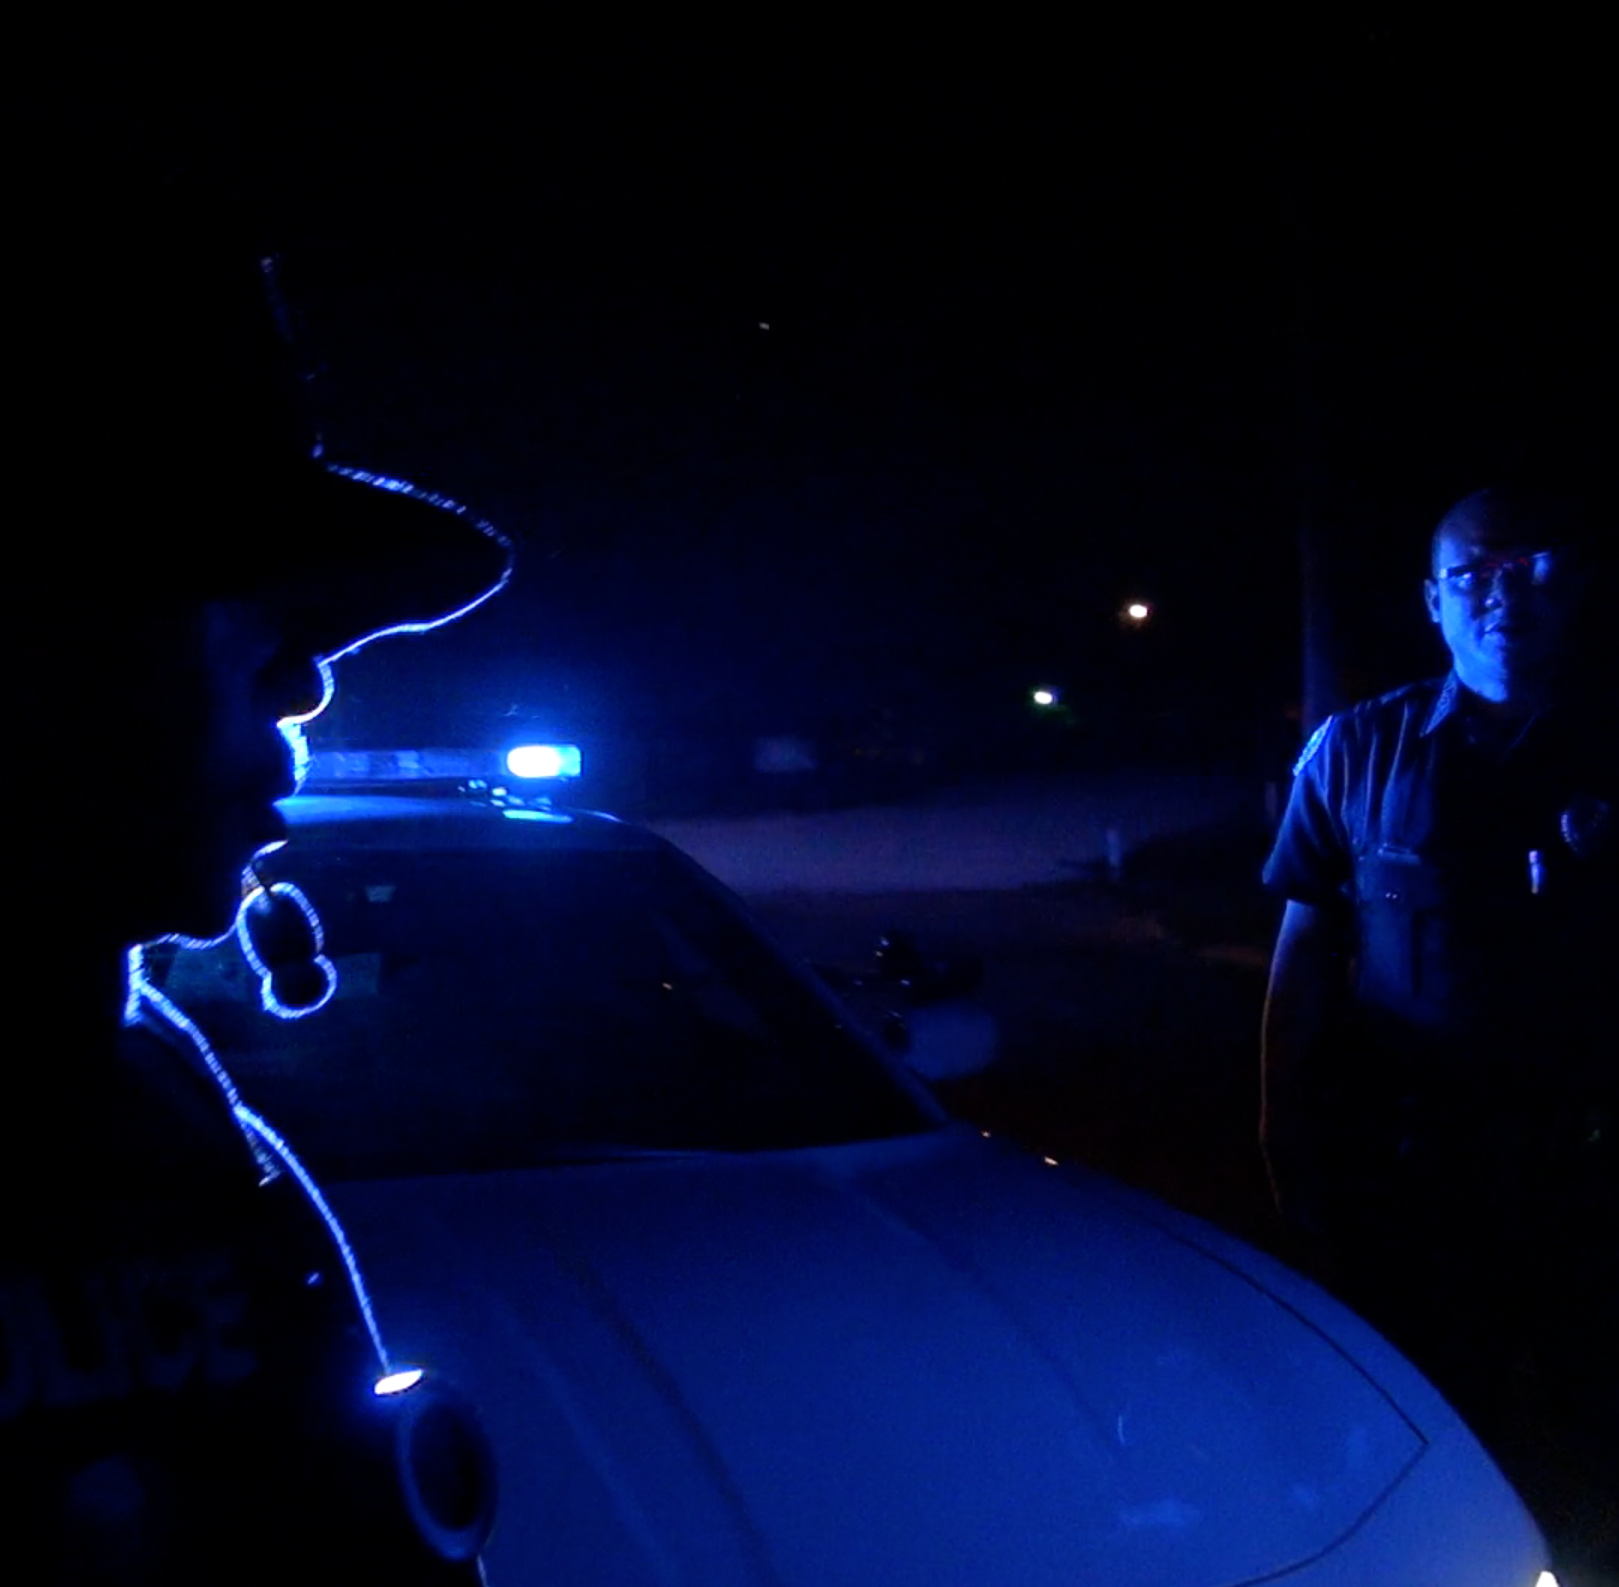 A Jackson police officer is silhouetted by the blue lights.